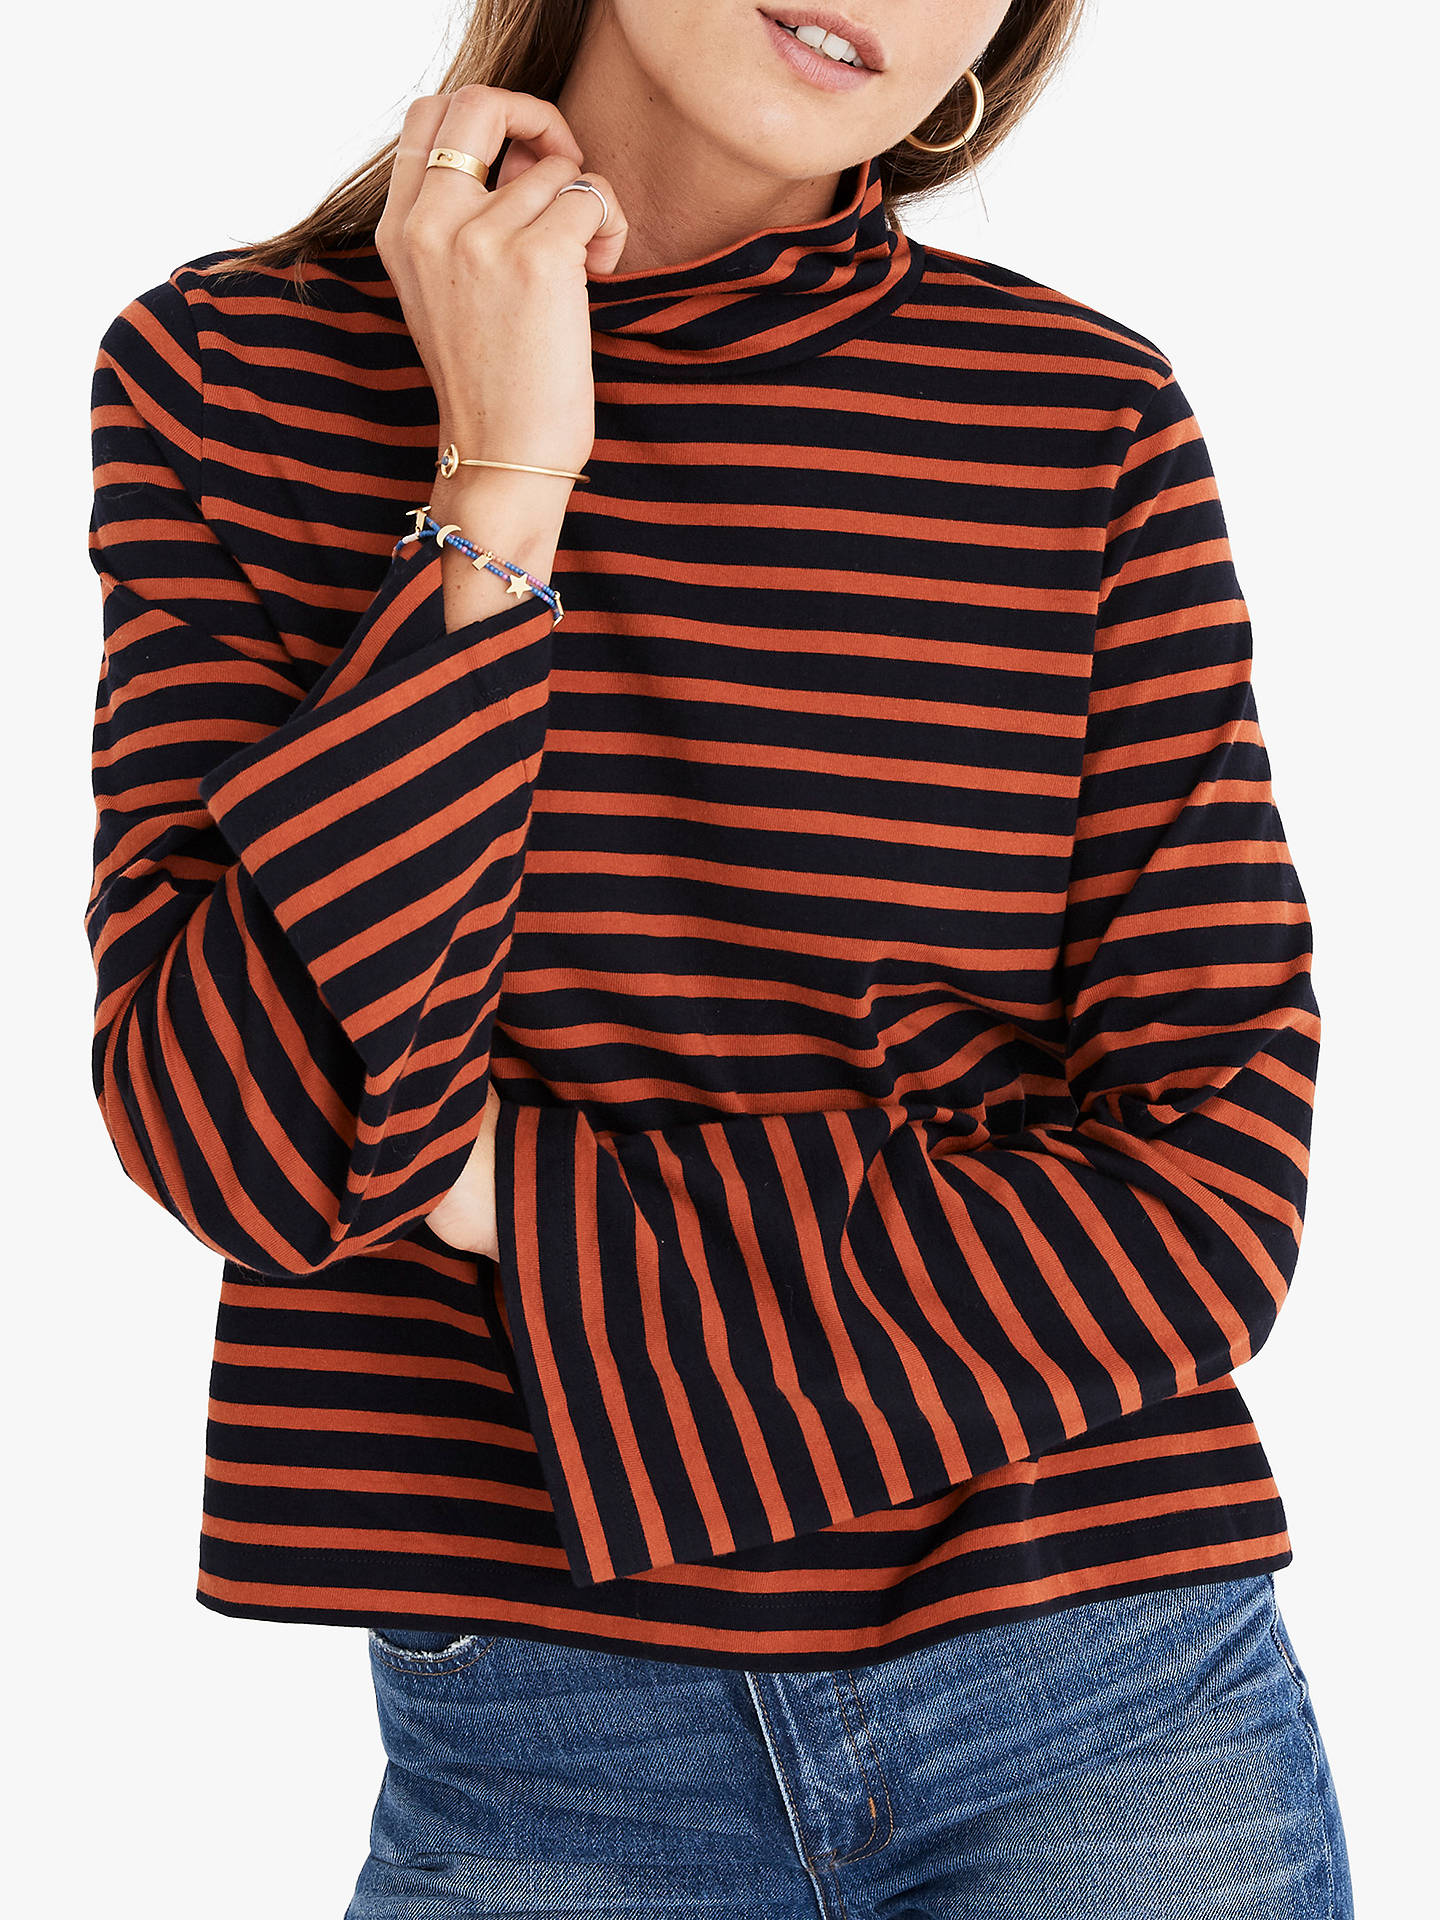 a51e463411fa1 Buy Madewell Oliver Striped Turtleneck Top, Night Vision, XXS Online at  johnlewis.com ...